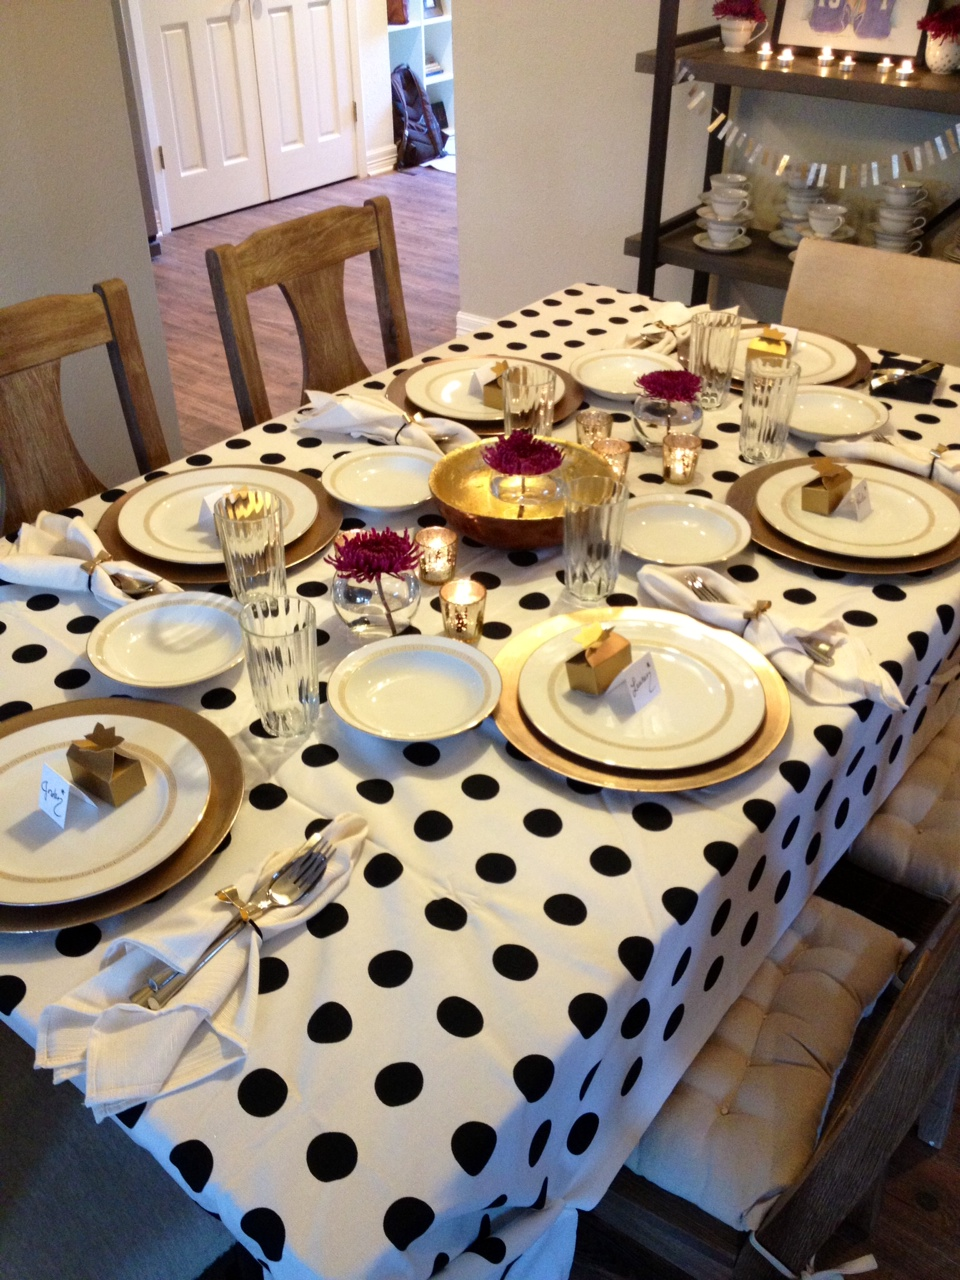 The Happy Homebodies Kate Spade Inspired Dinner Party - Kate spade table linens